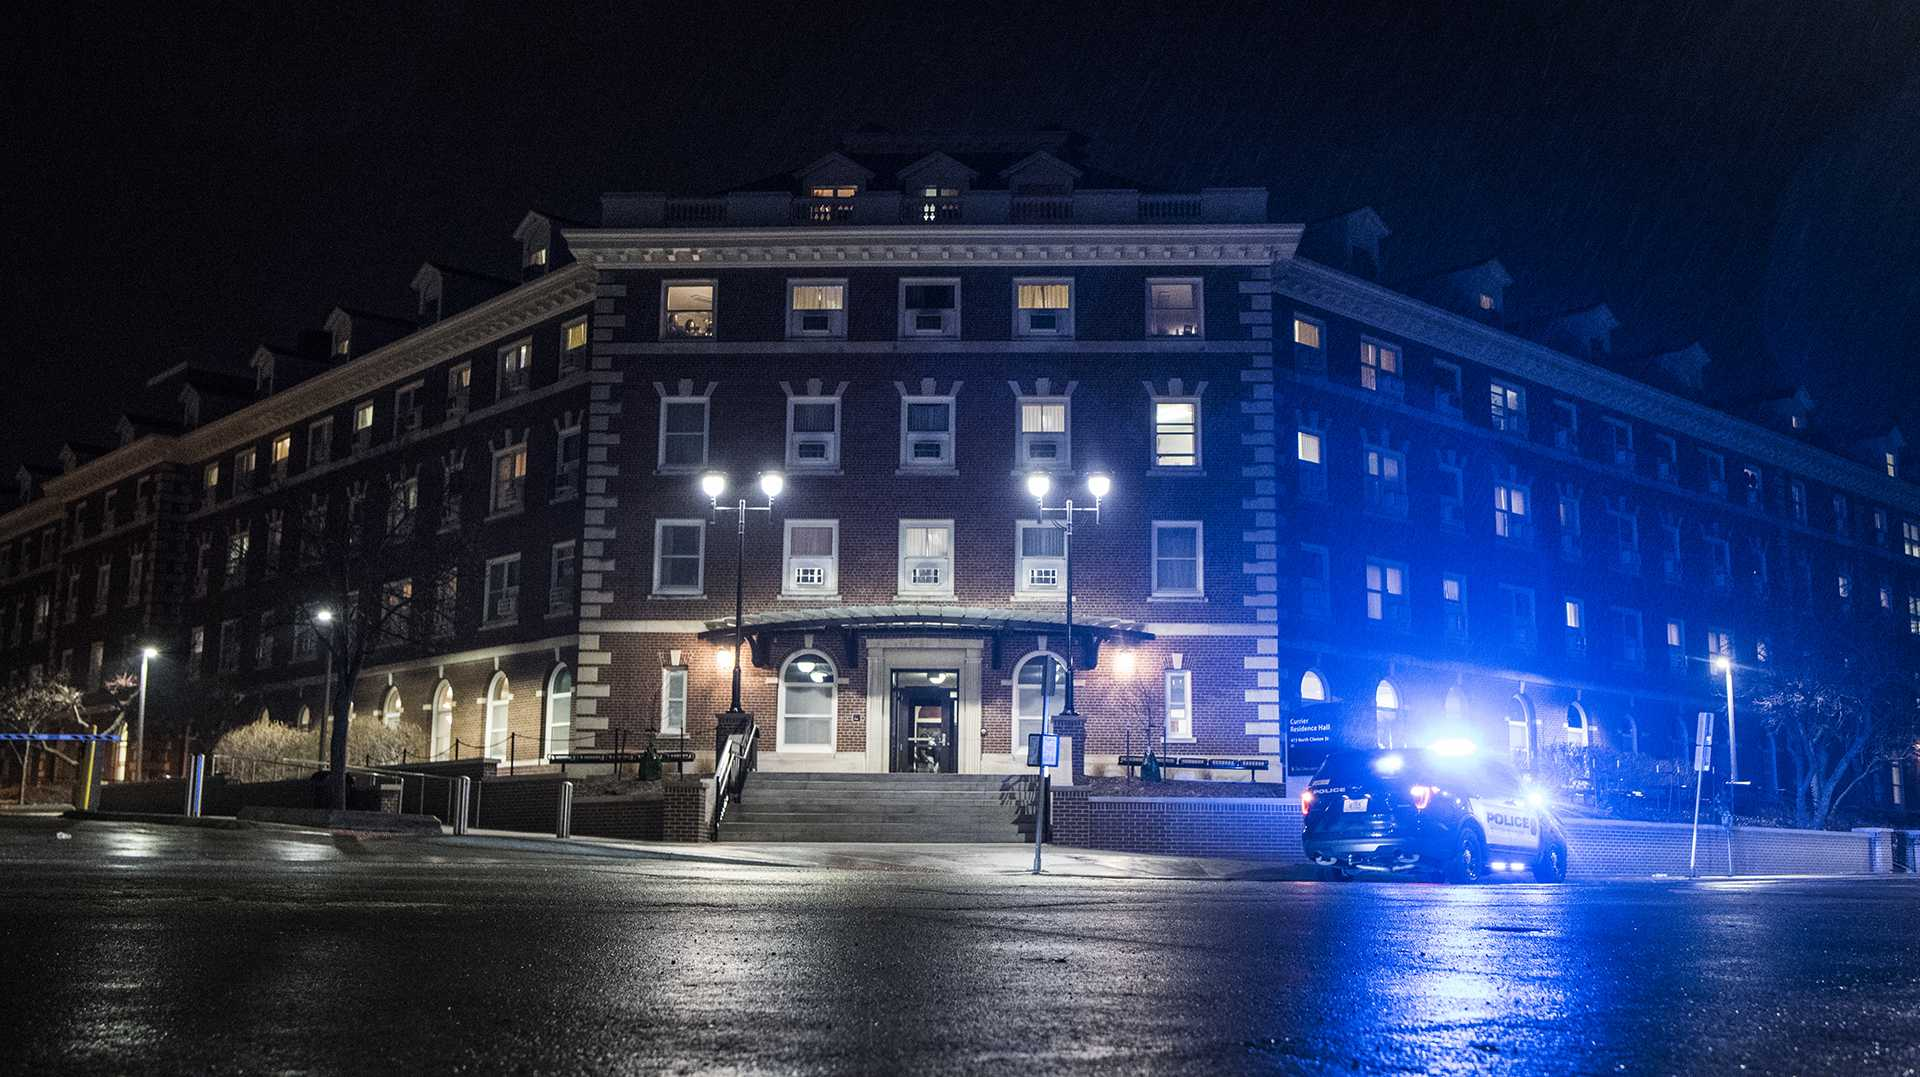 Iowa City and University of Iowa police respond to loud bangs at Currier Residence Hall on Wednesday, Feb. 28, 2018. No suspicious activity was reported by emergency services following an inspection of the building. (Ben Allan Smith/The Daily Iowan)